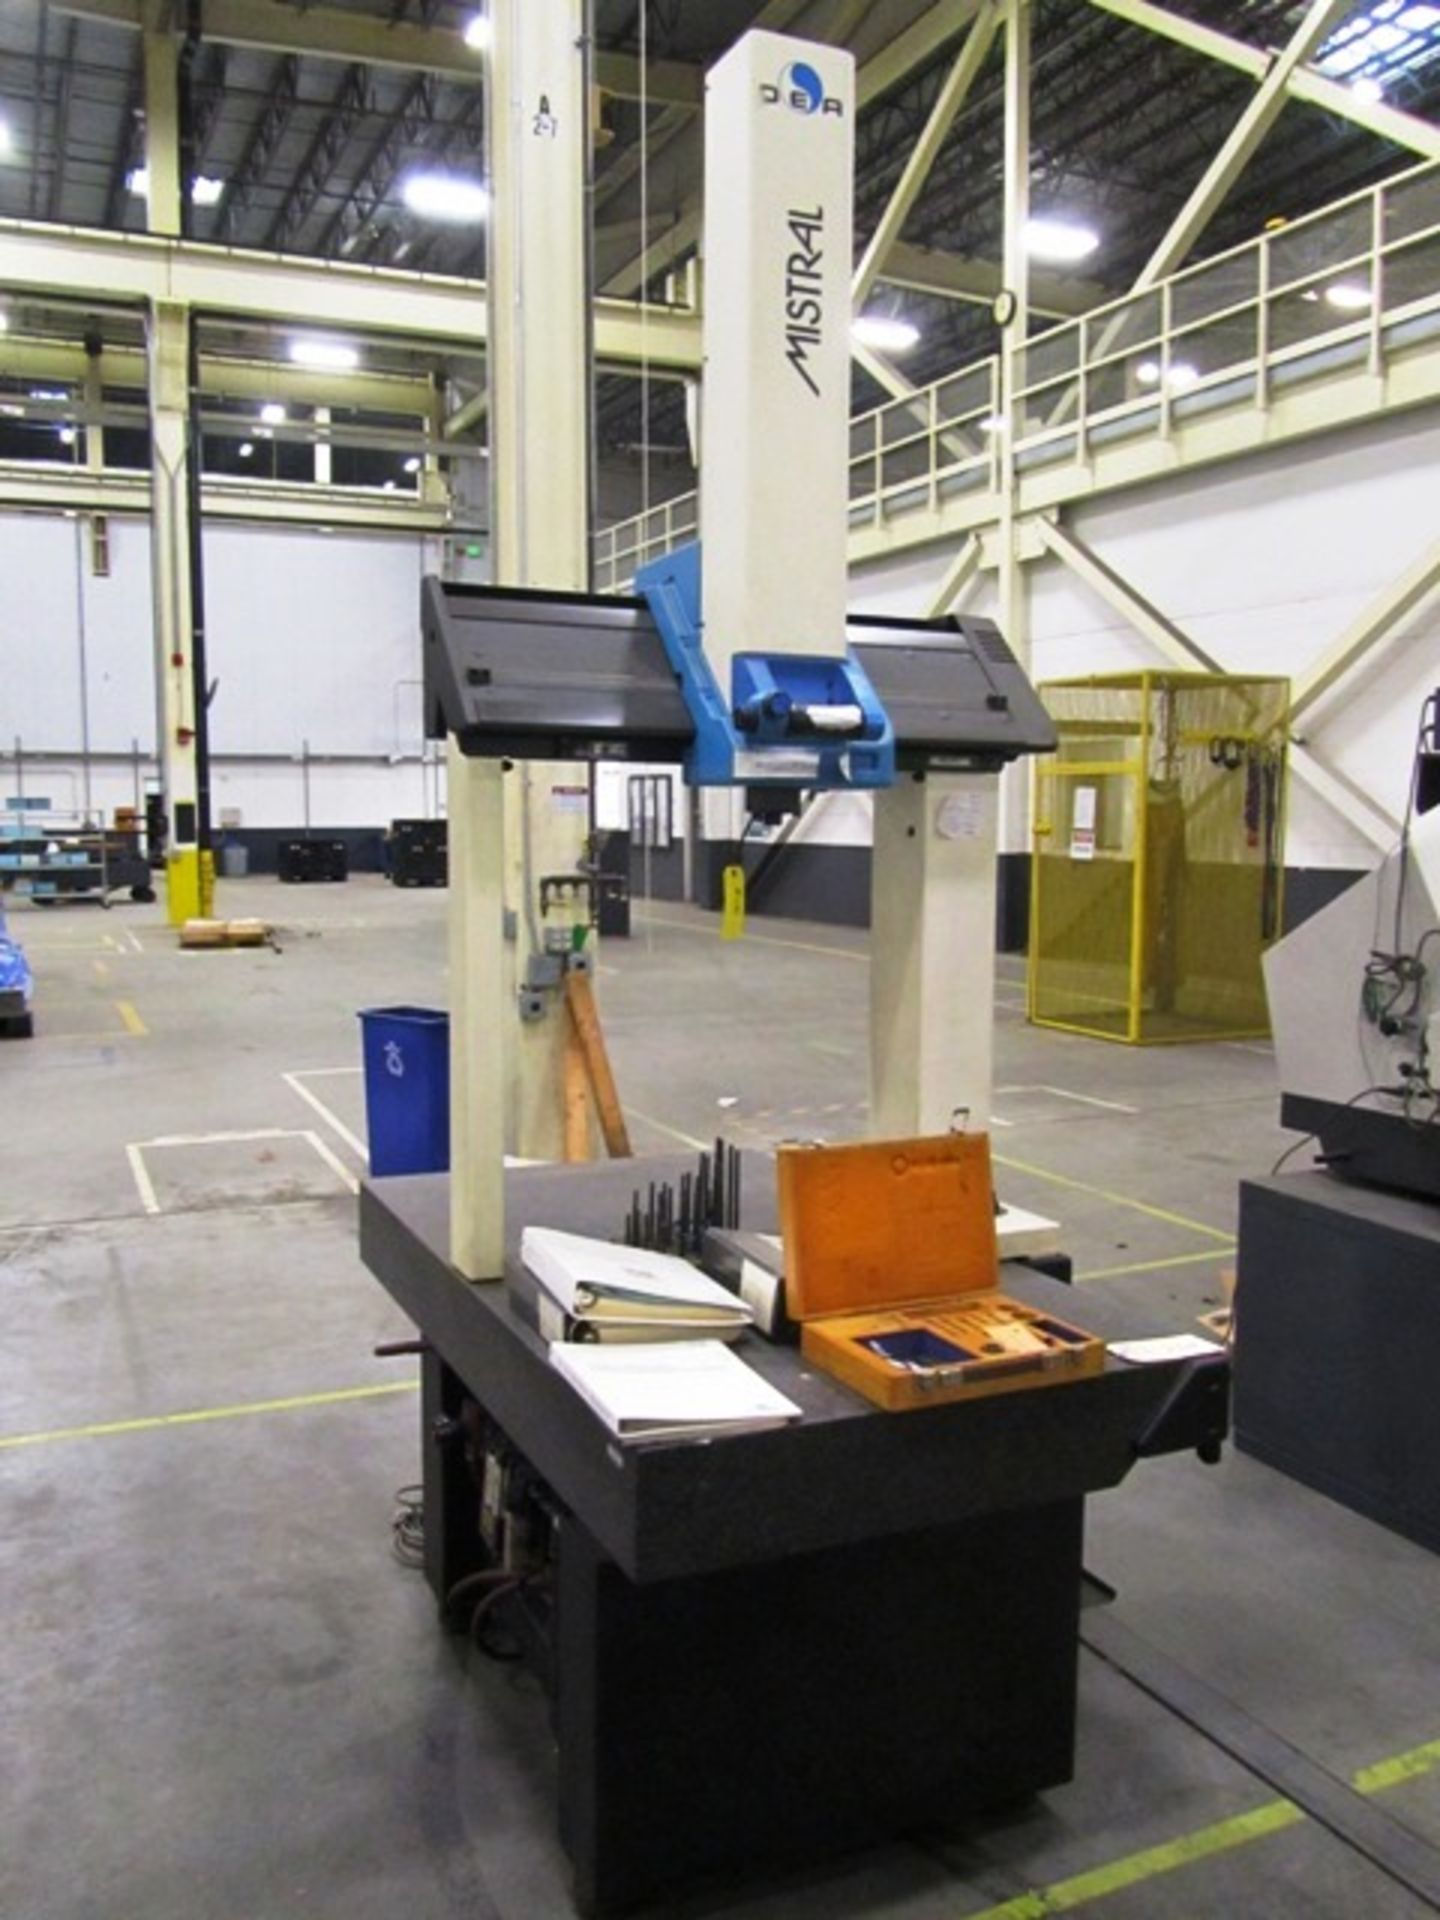 Mistral DEA Model 100707 Coordinate Measuring Machine